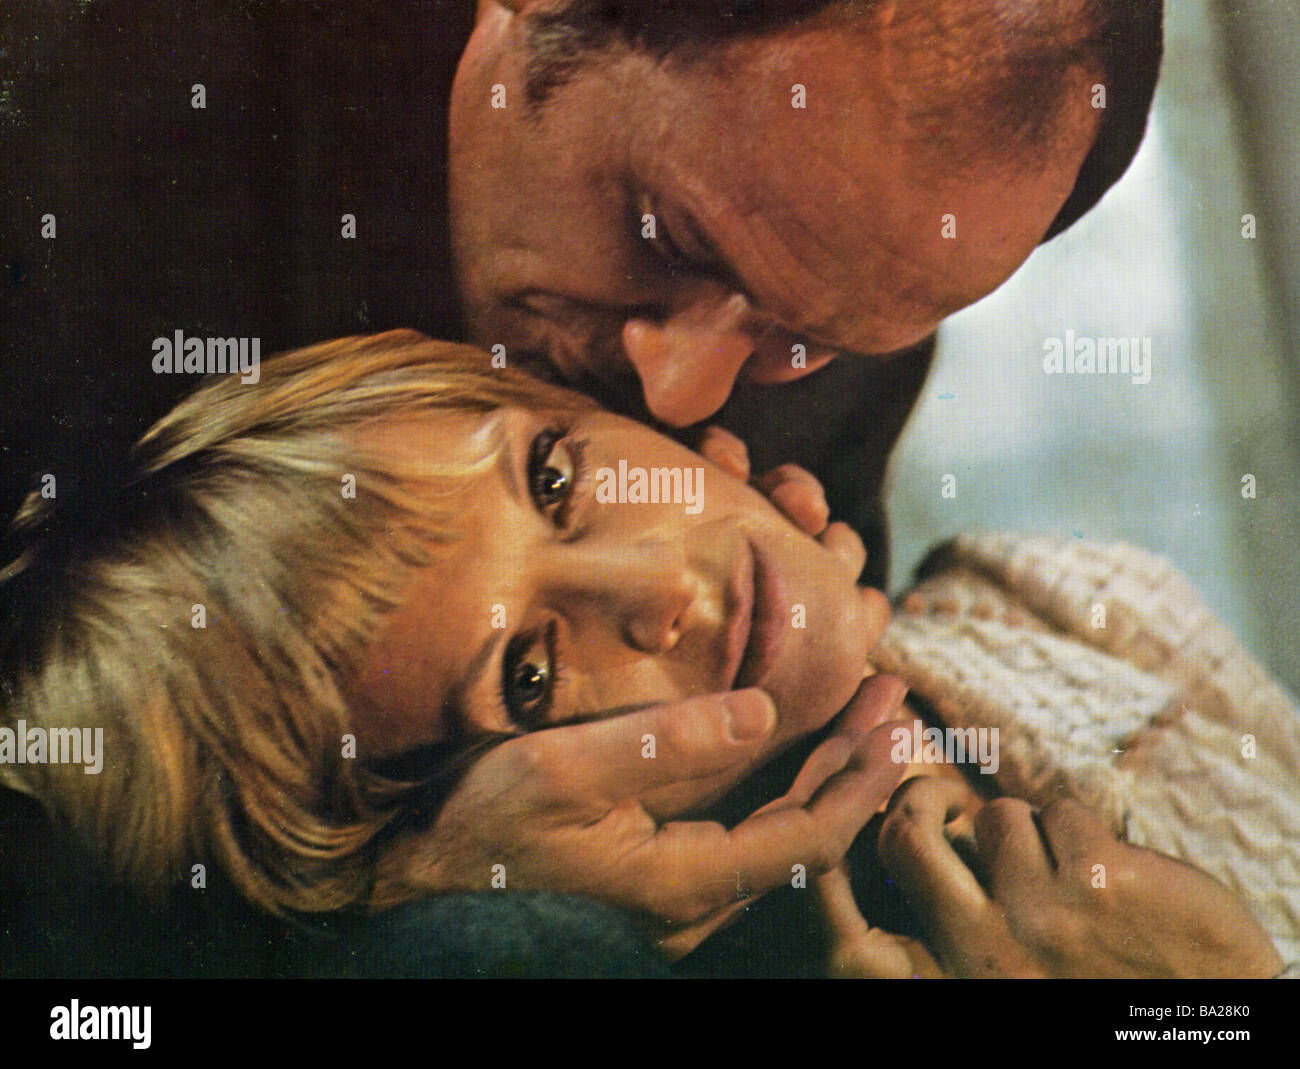 1972 images du film Lions Gate avec Susannah York Photo Stock